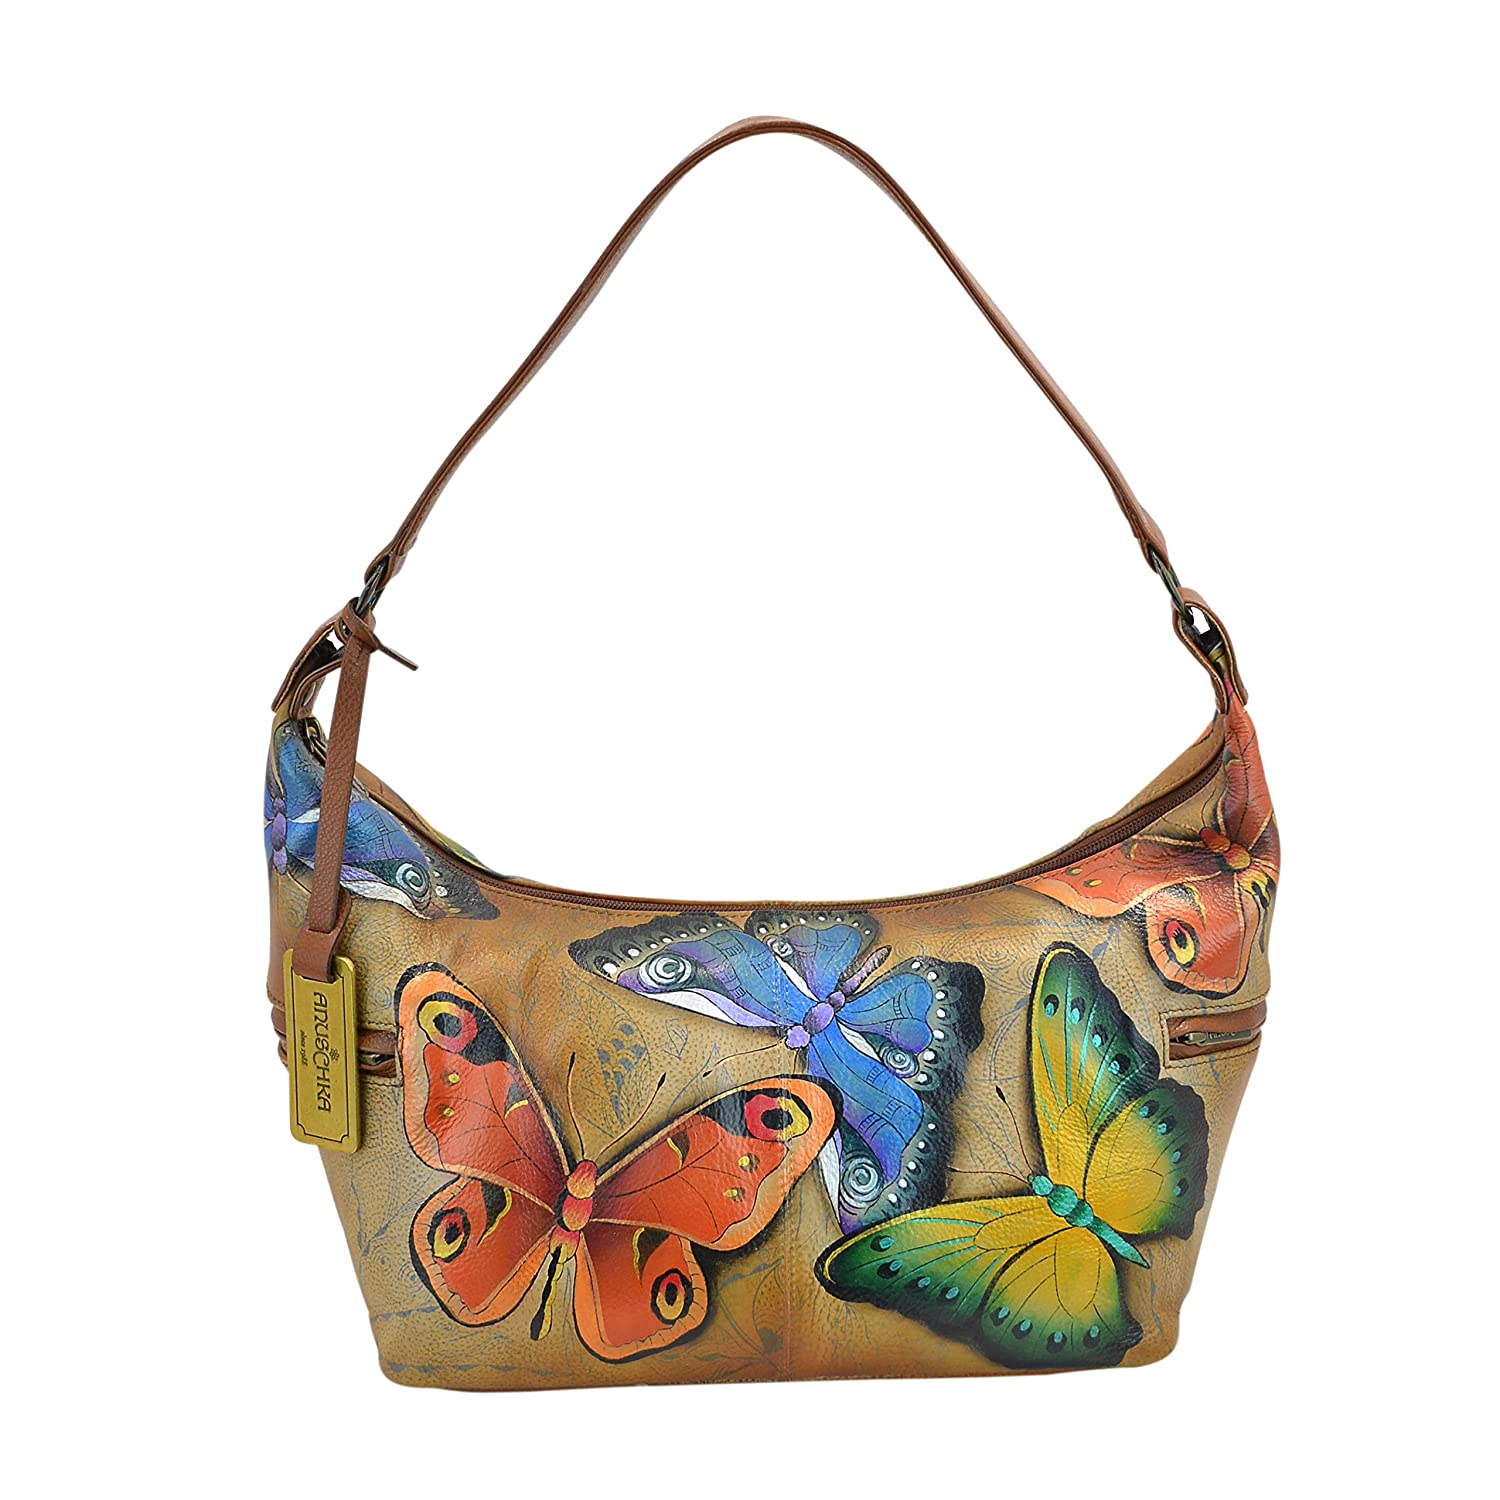 Image of Luggage Anuschka Hand Painted East West Medium Hobo Earth Song